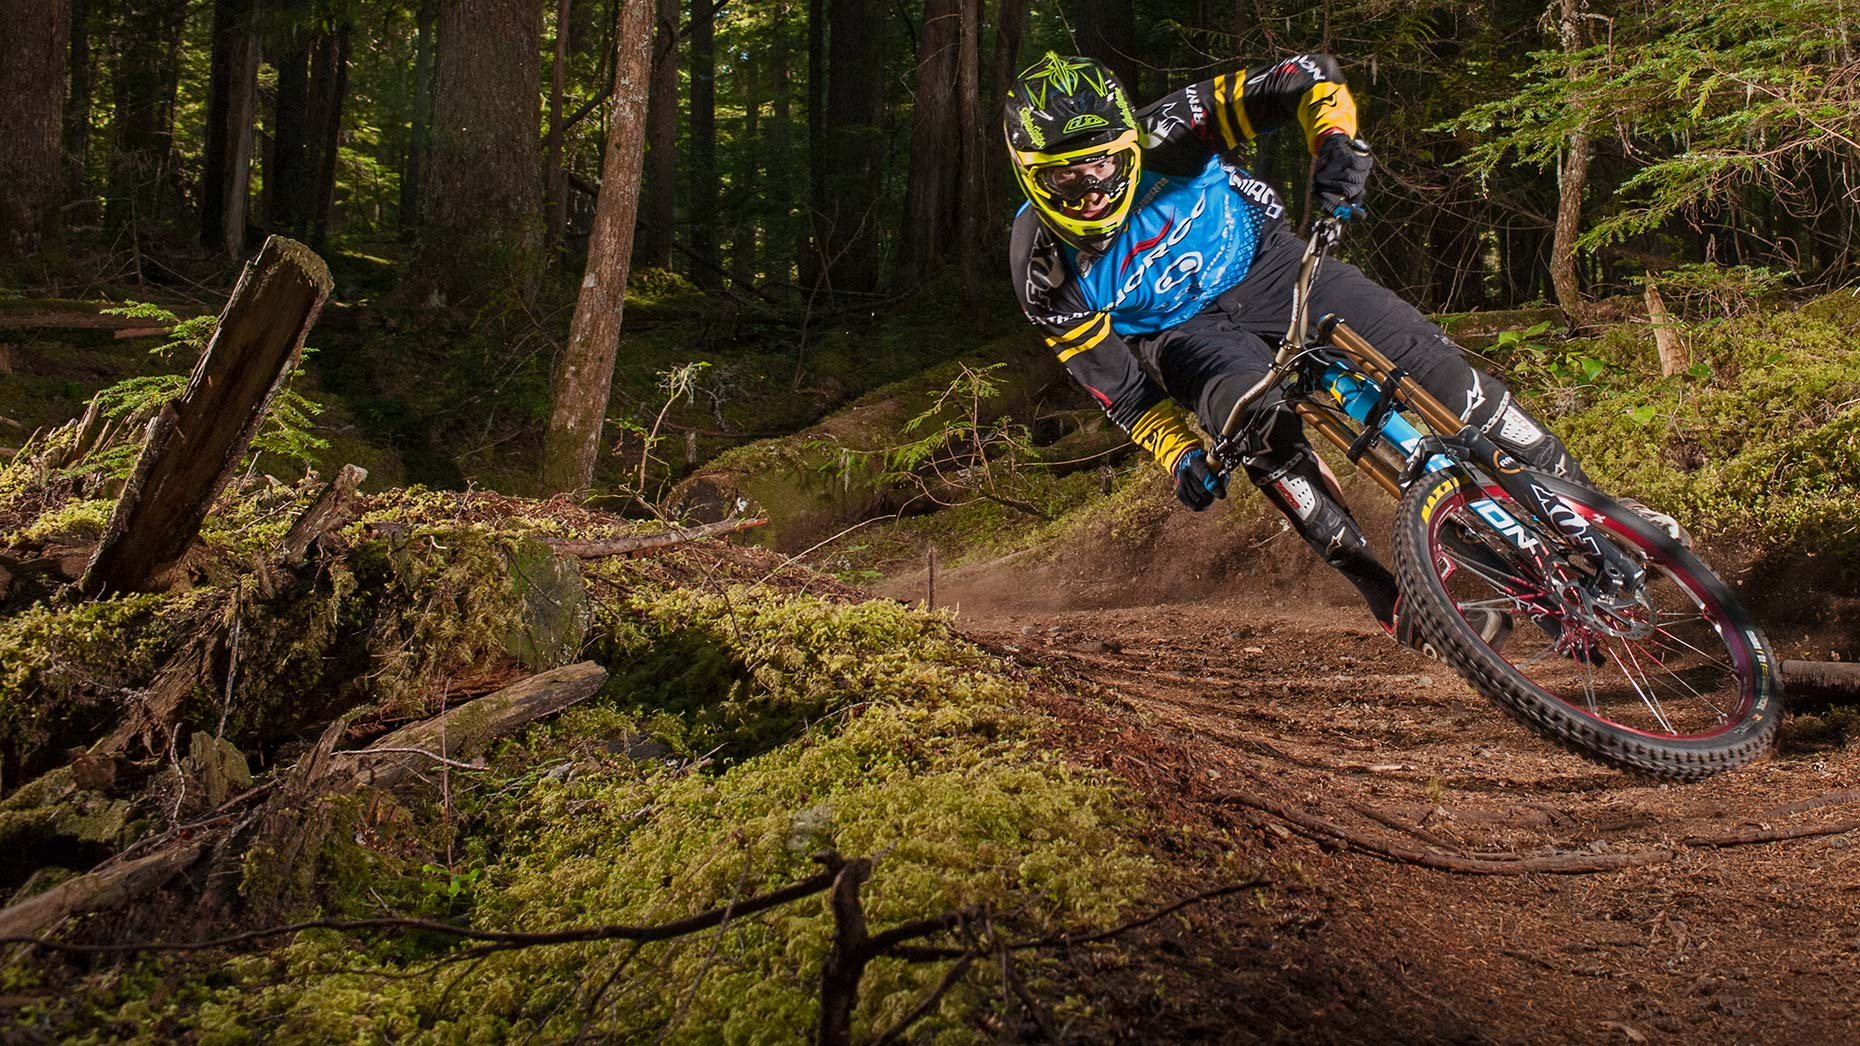 Ian-Coble-Mountain-Bike-Strobe-Downhill